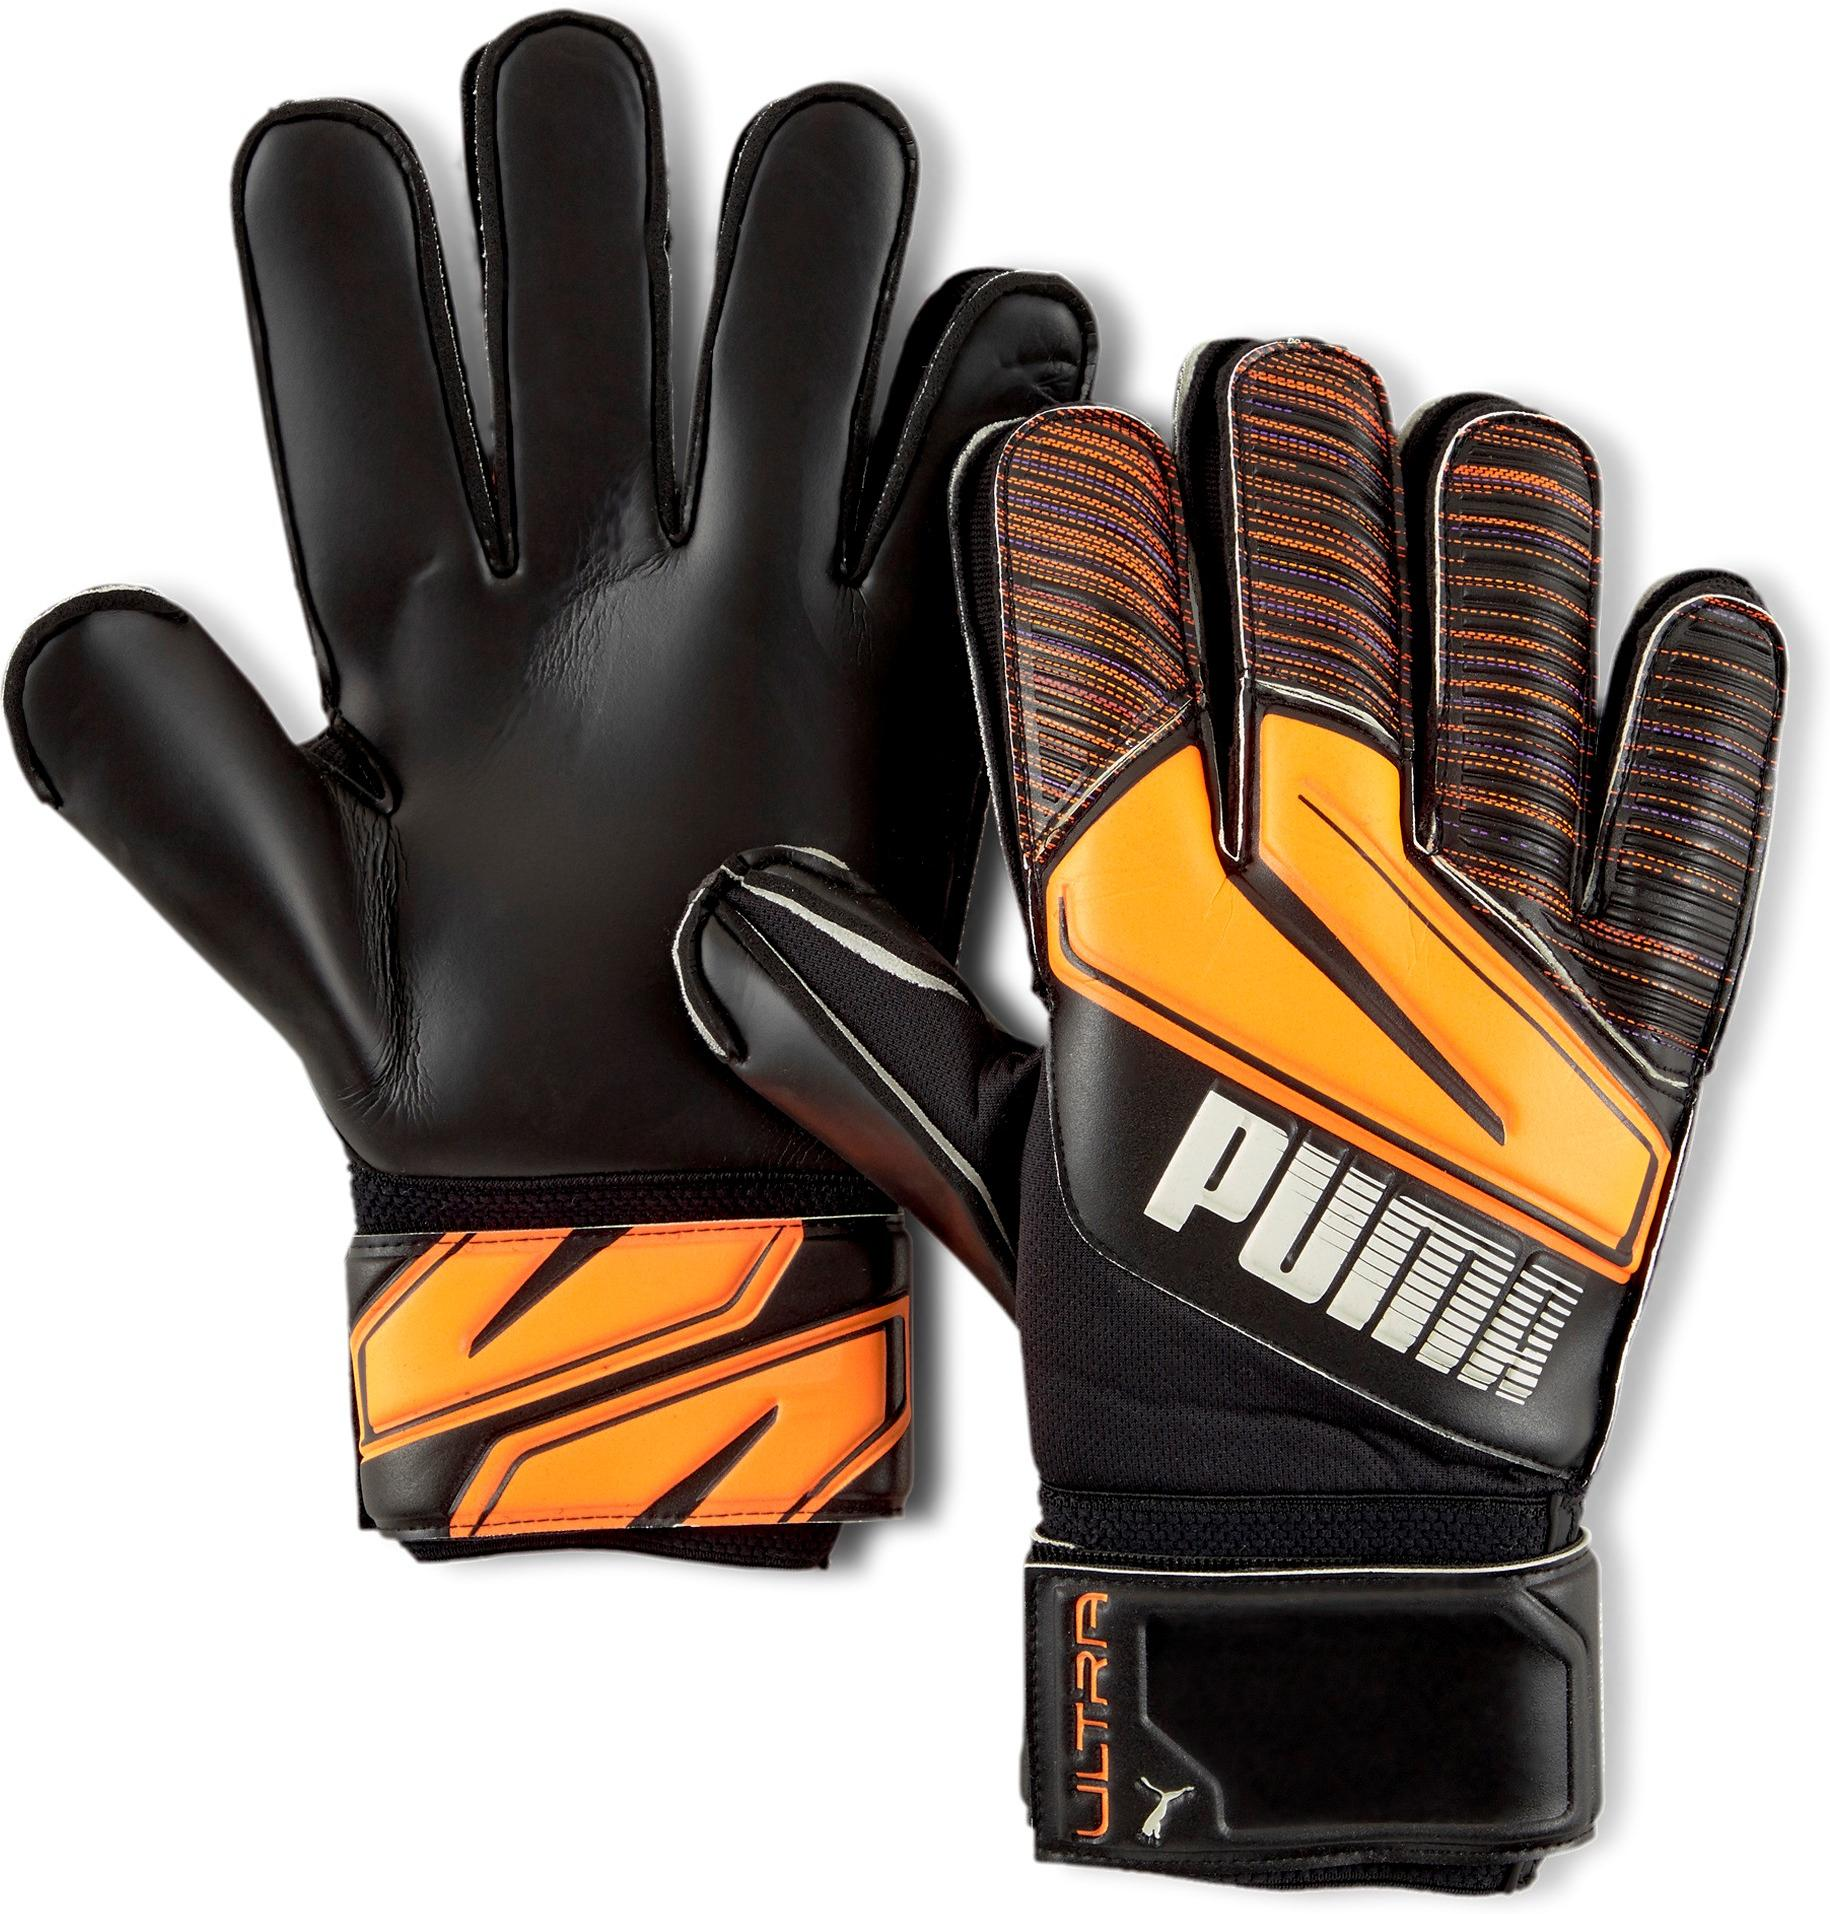 Goalkeeper's gloves Puma ULTRA Protect 2 RC